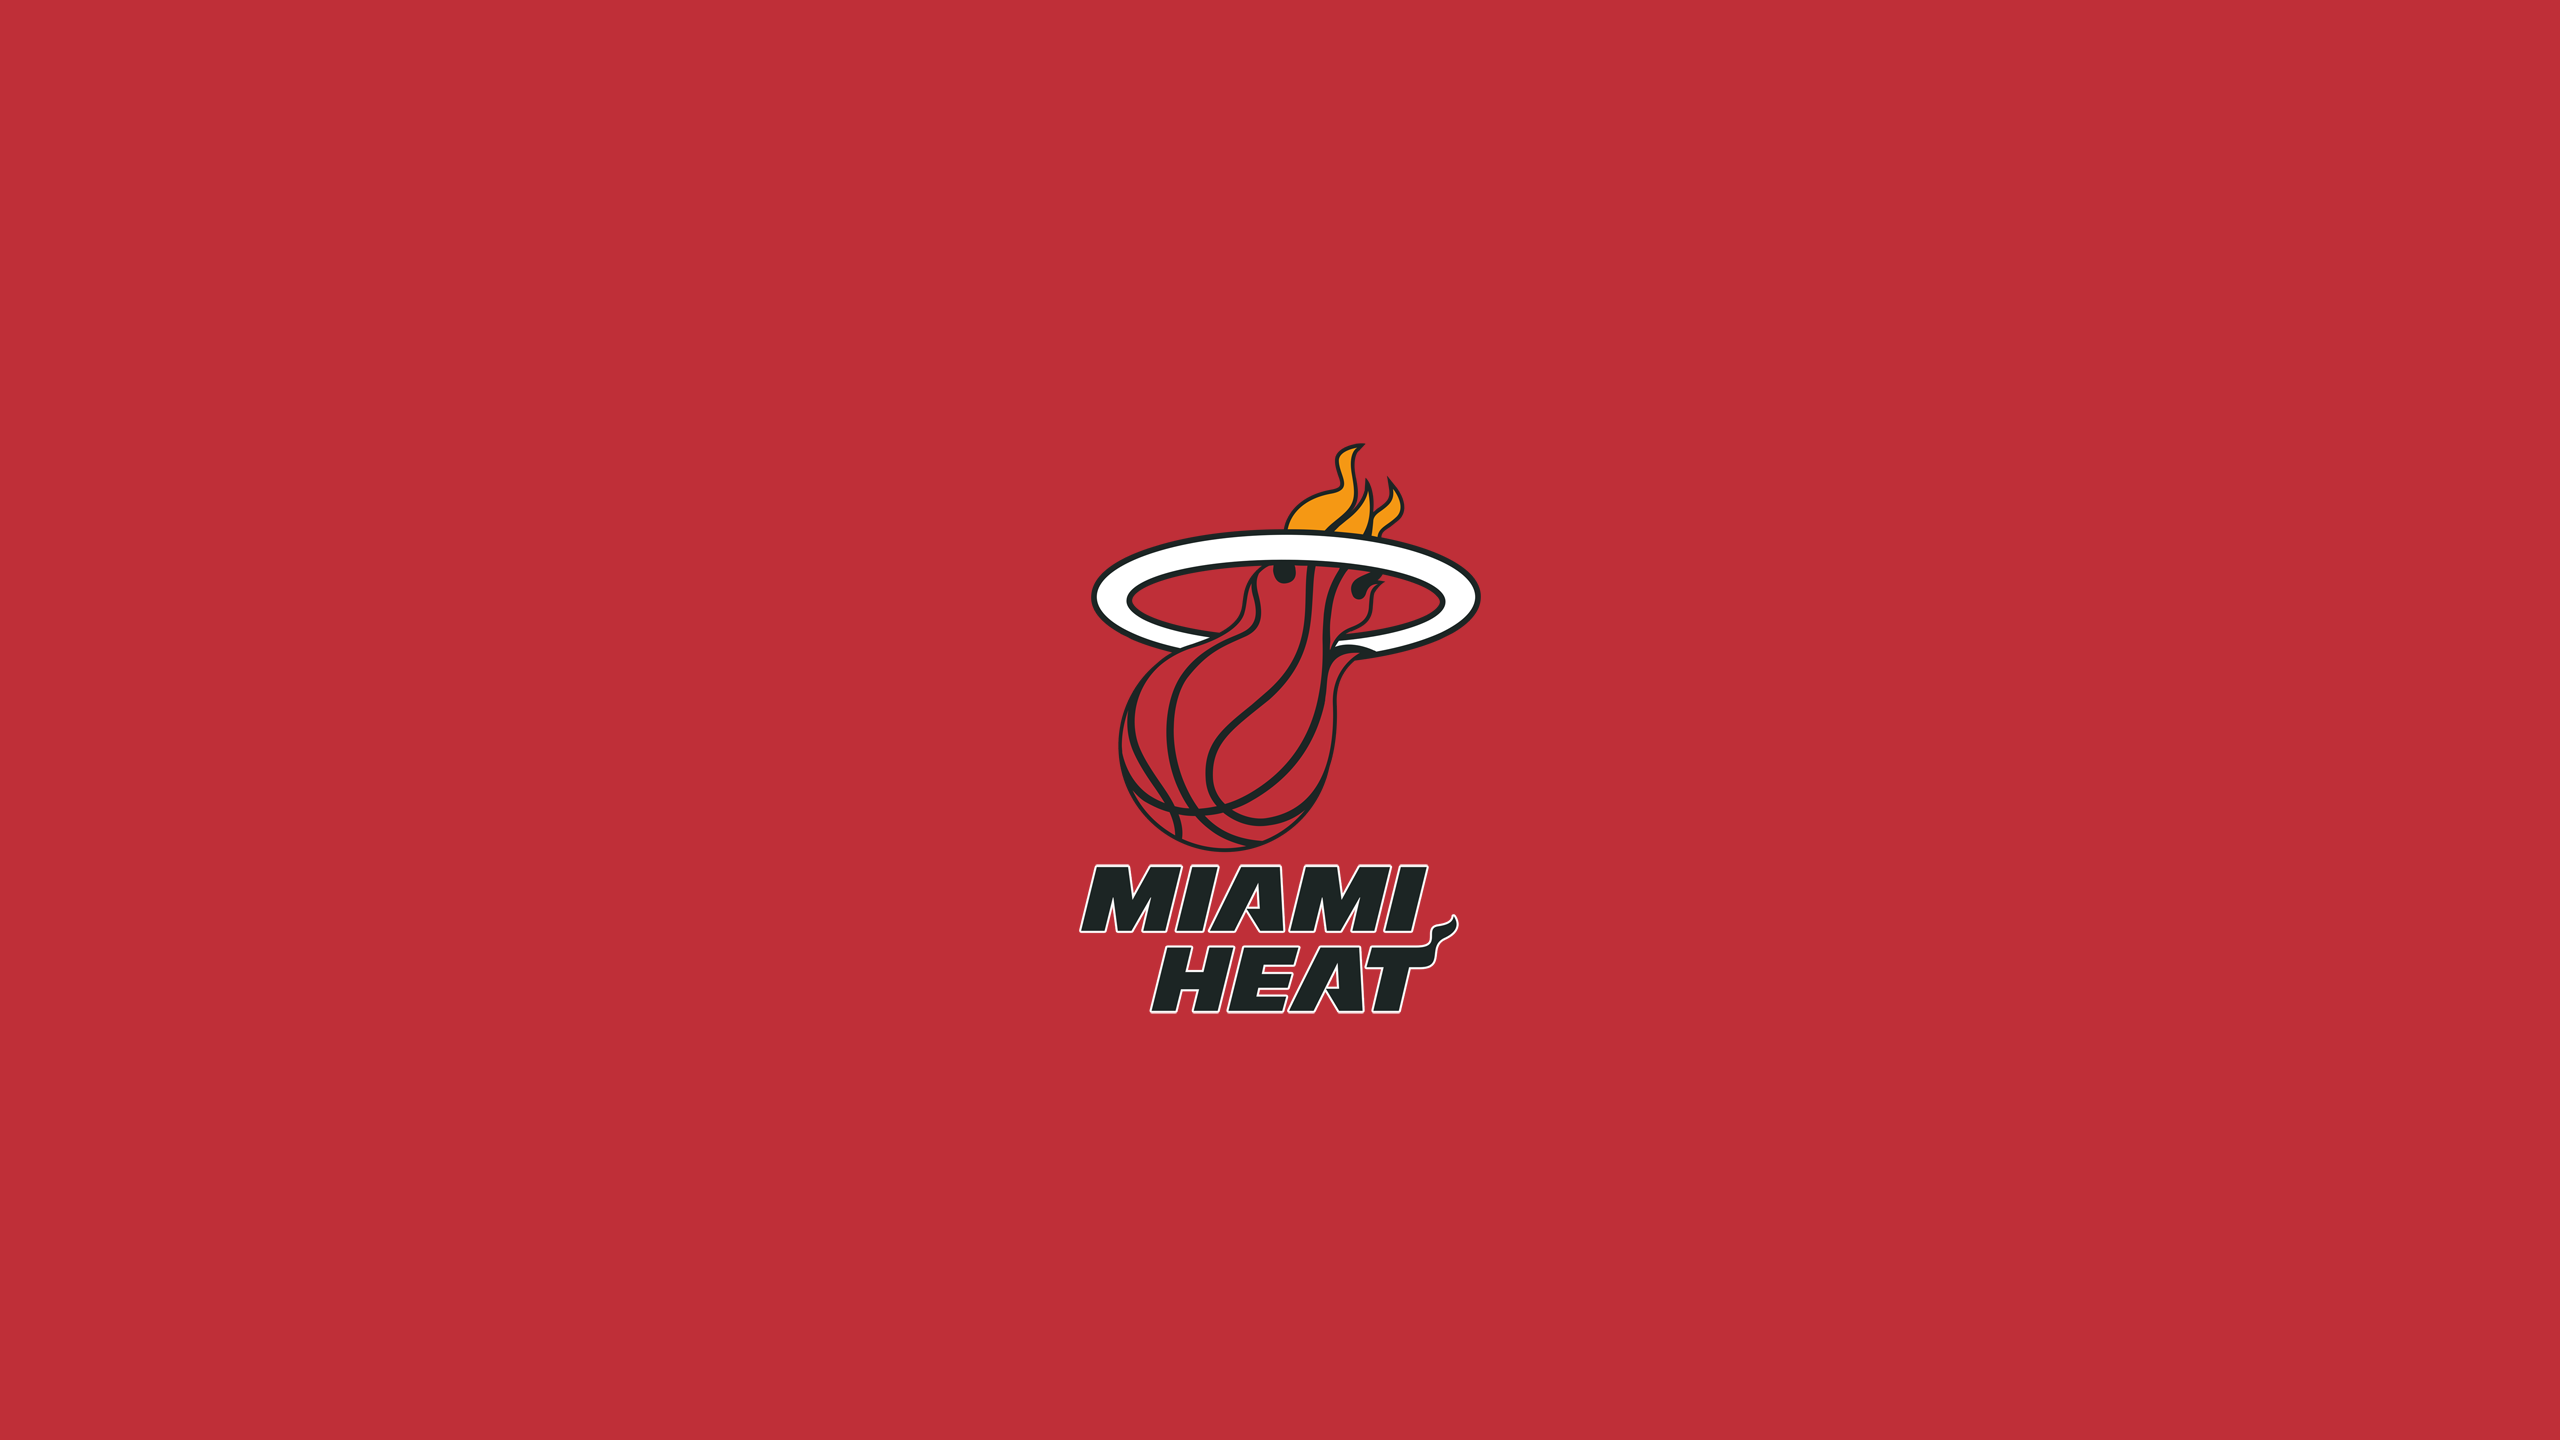 Miami Heat (Wordmark)